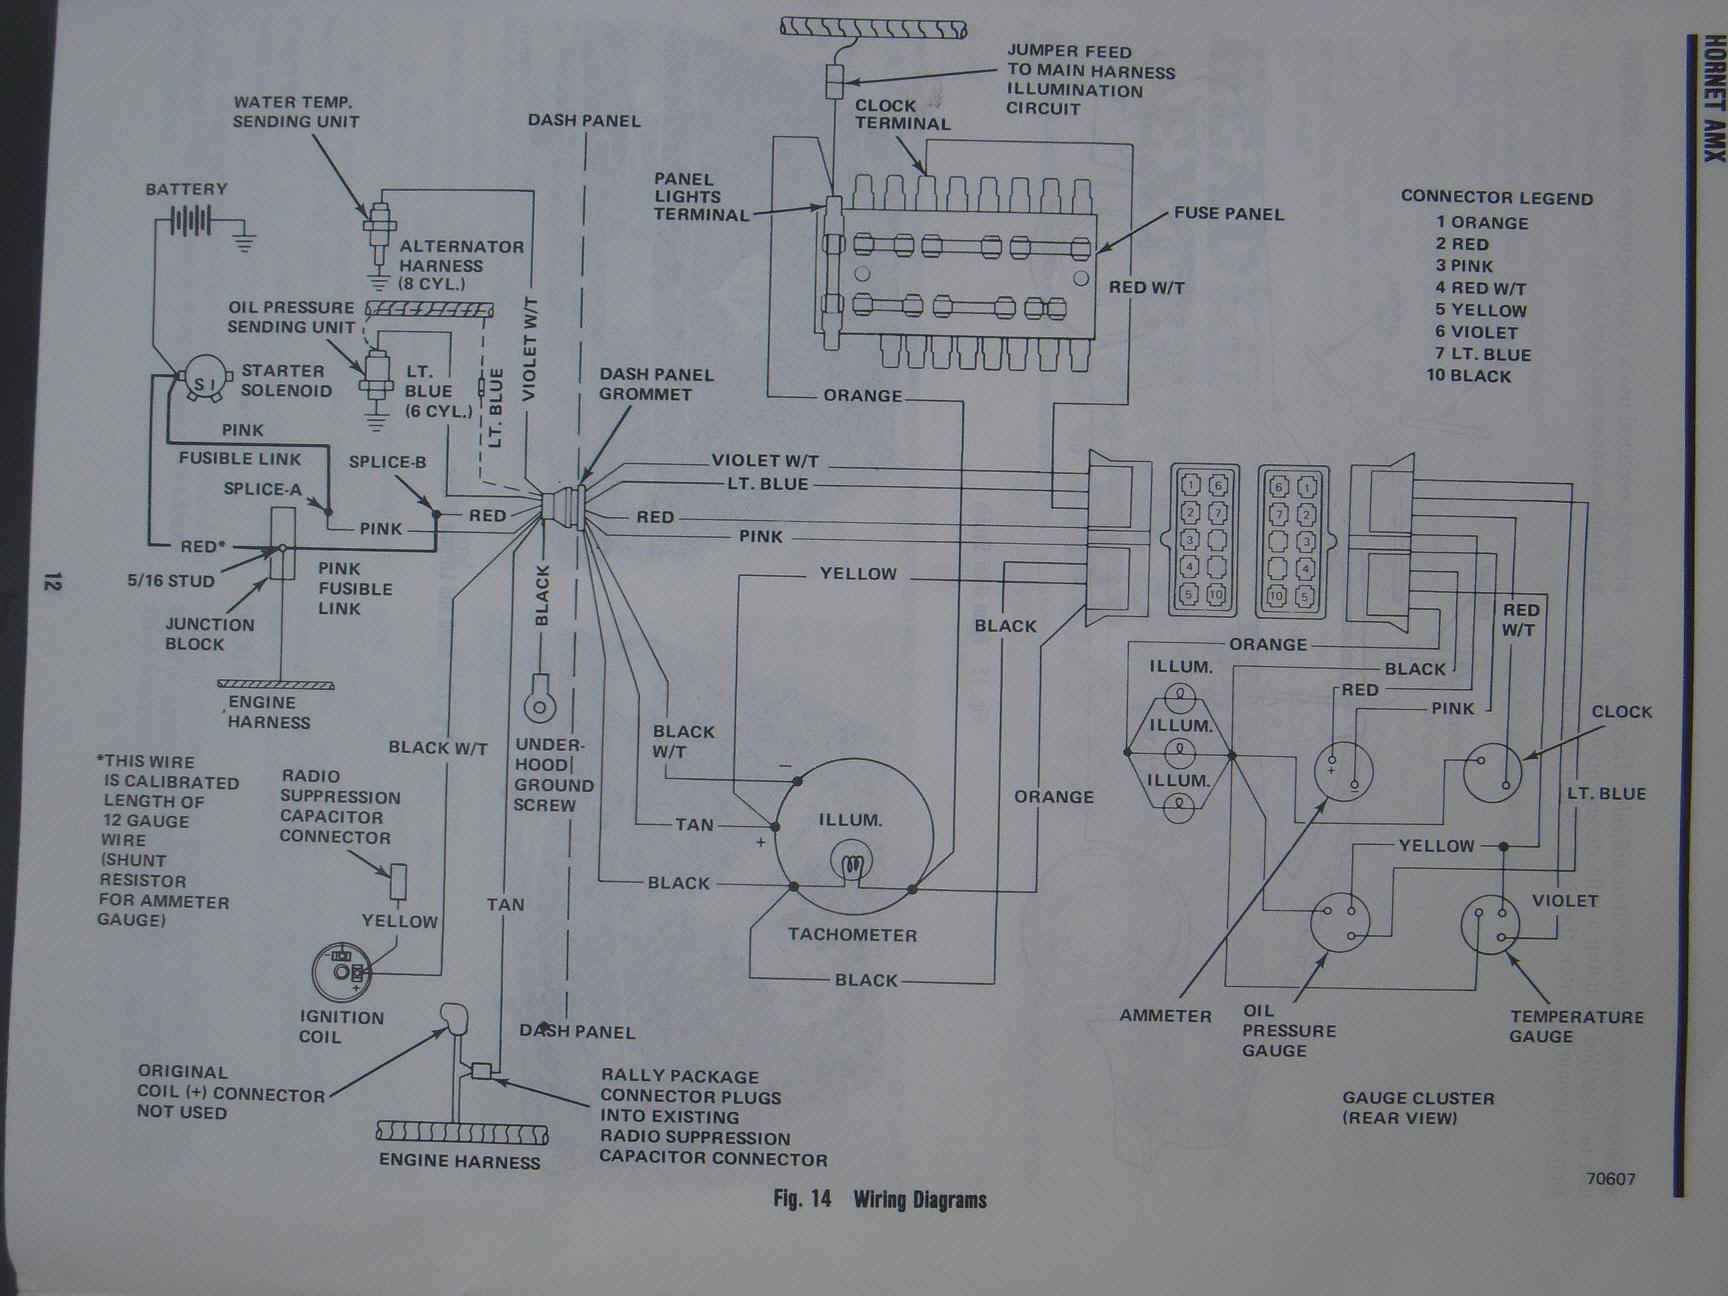 hight resolution of 1974 amc javelin wiring diagram wiring diagrams msd 6al wiring diagram chevy v 8 1968 amc